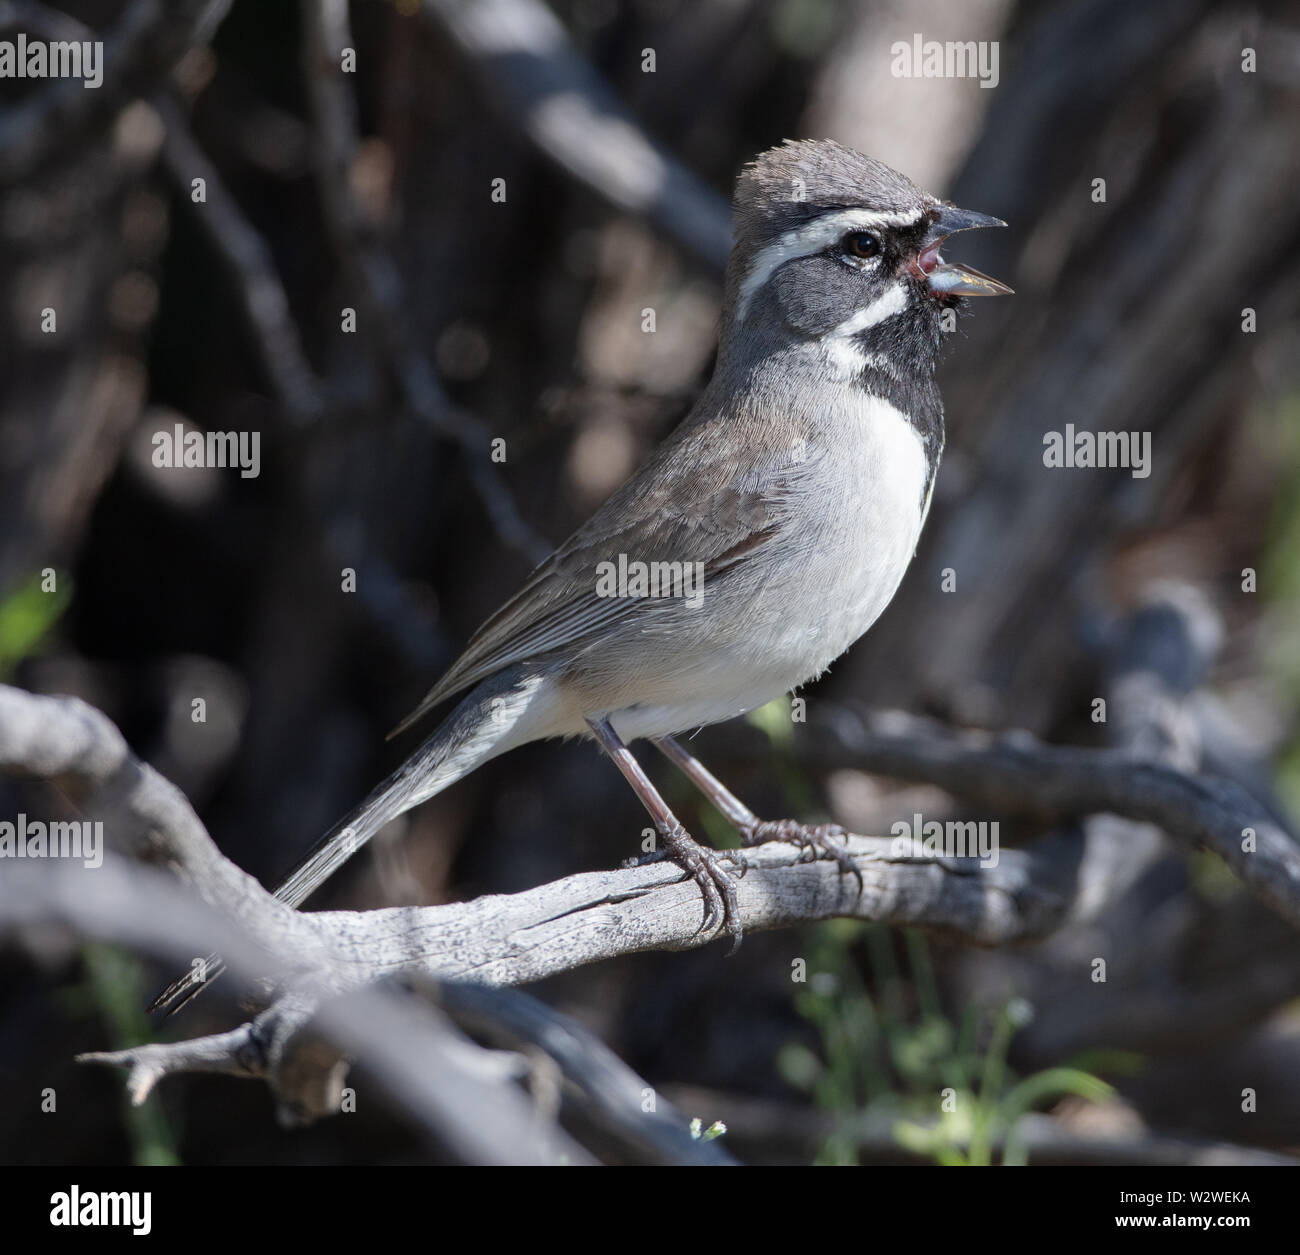 A striking black-throated sparrow (Amphispiza bilineata) or desert sparrow sings on a branch in Arizona - Stock Image